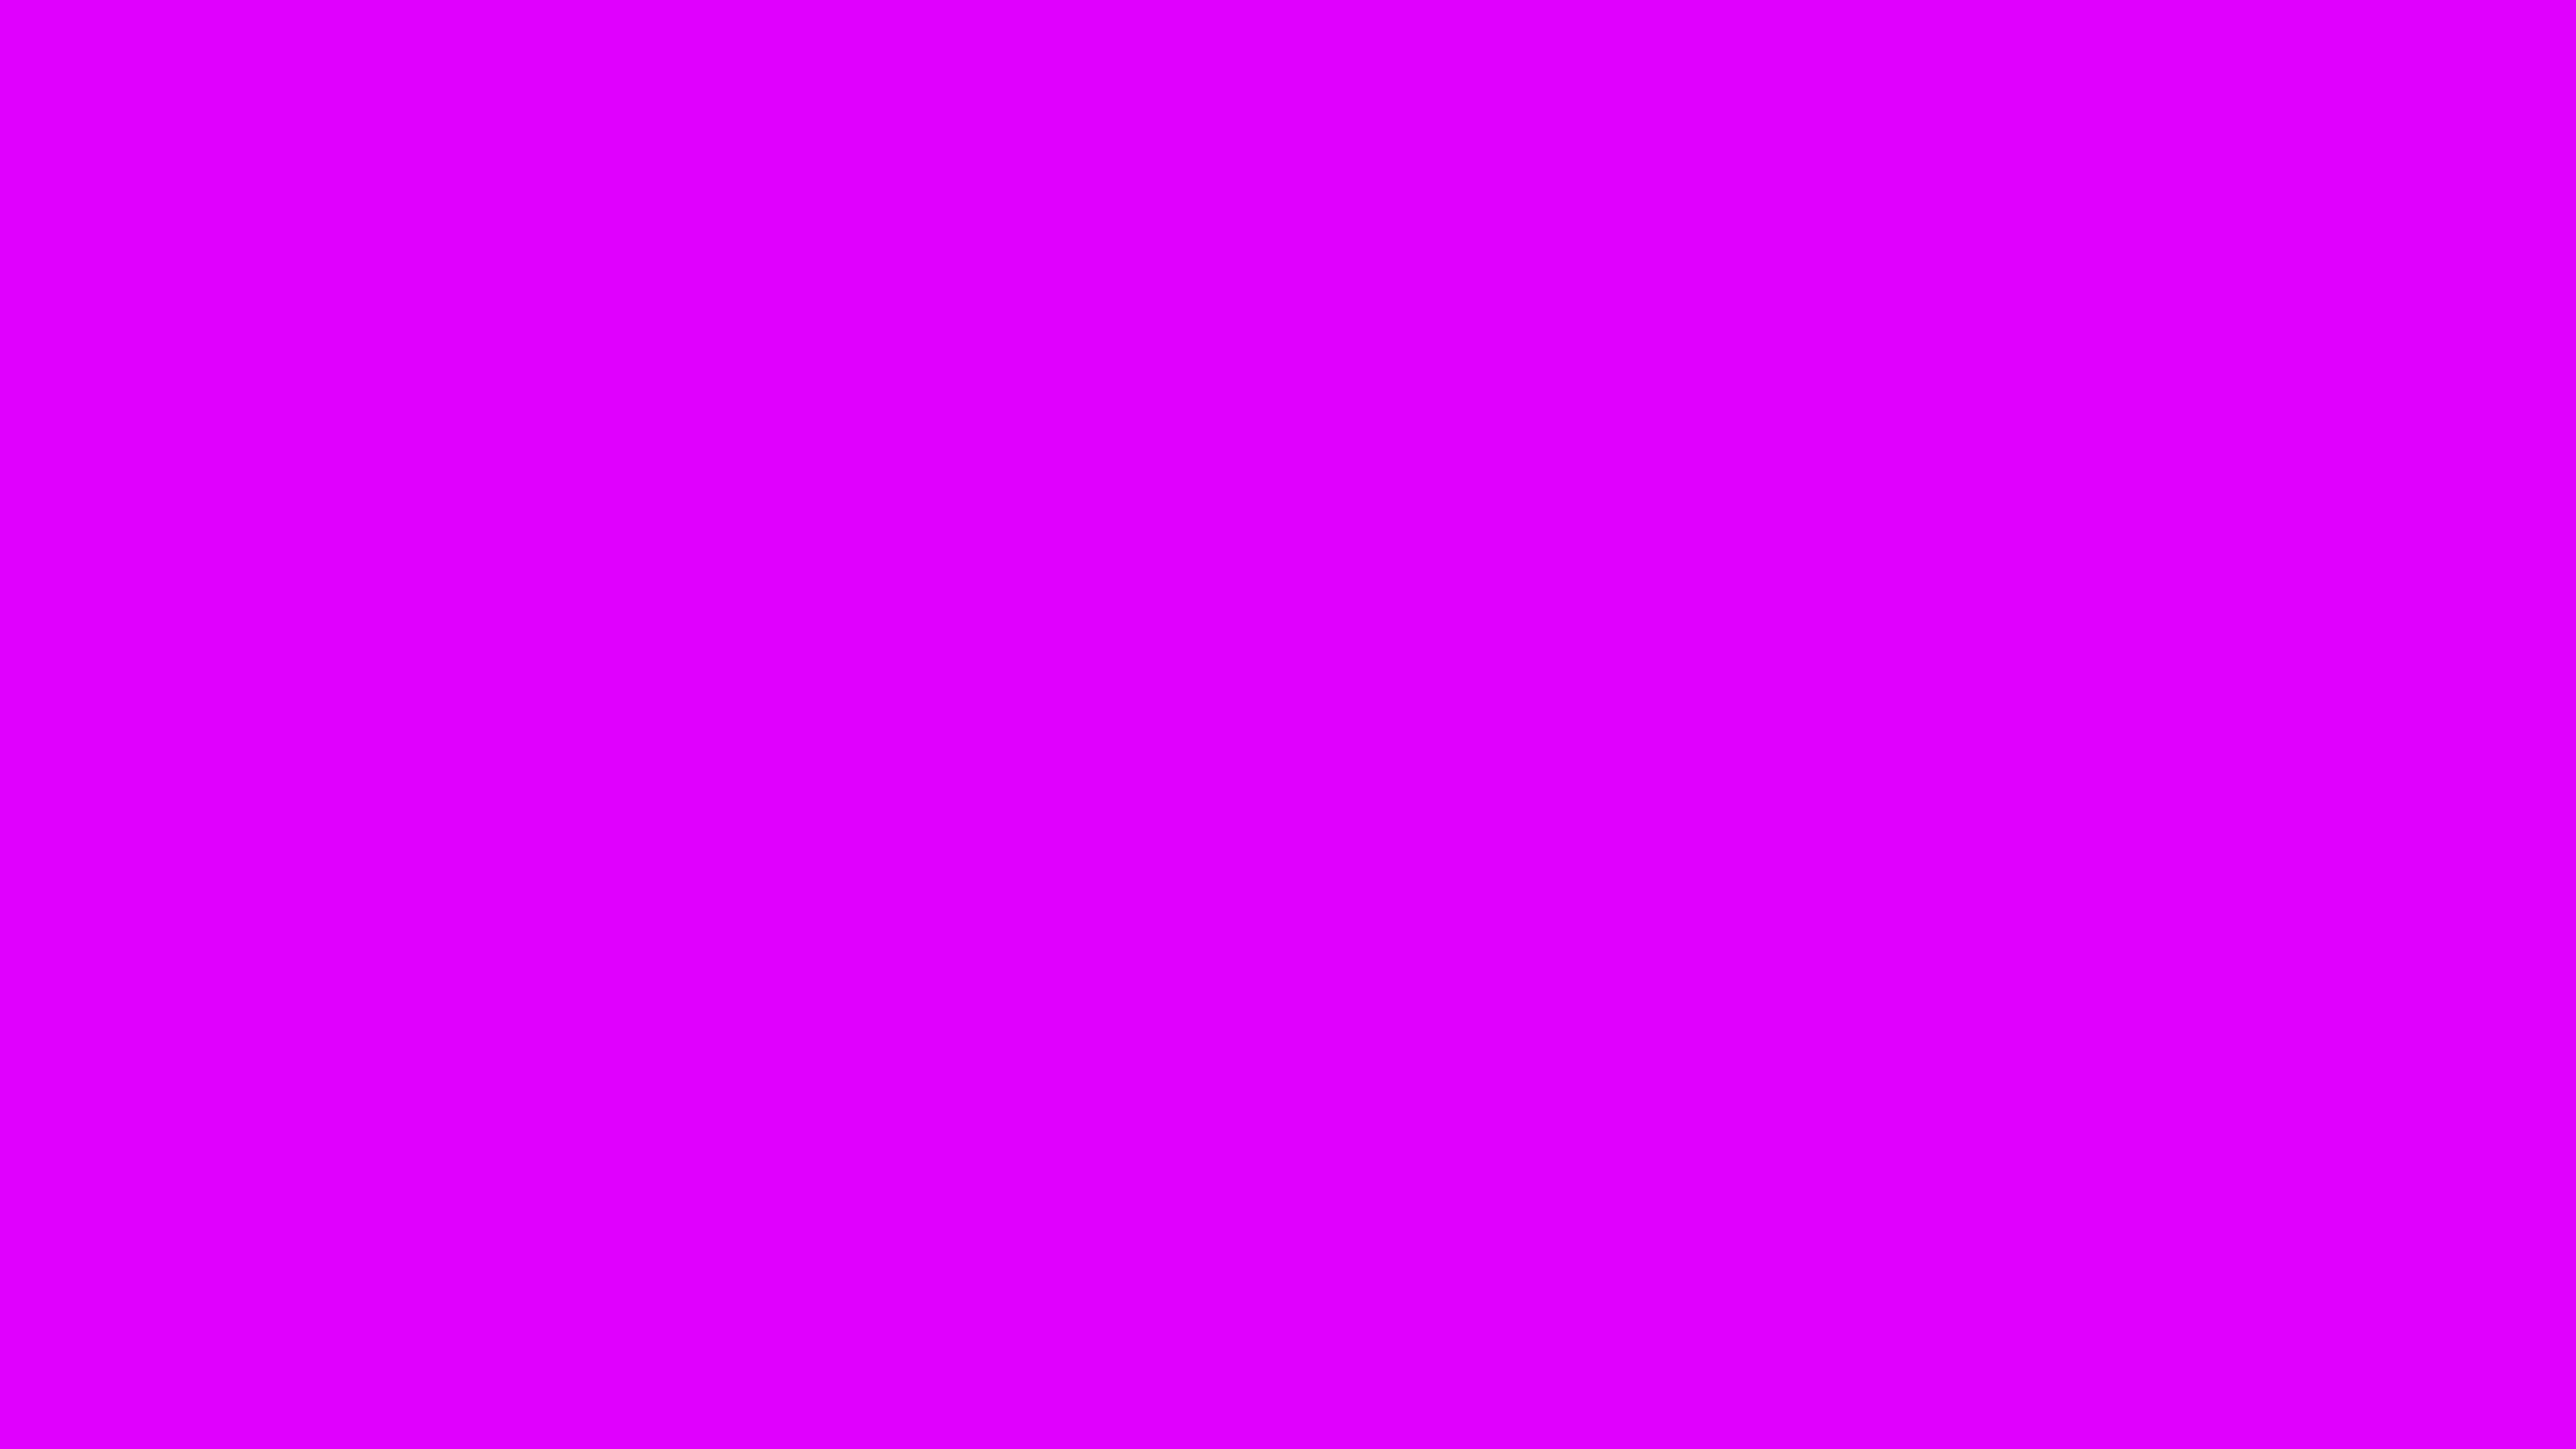 5120x2880 Psychedelic Purple Solid Color Background